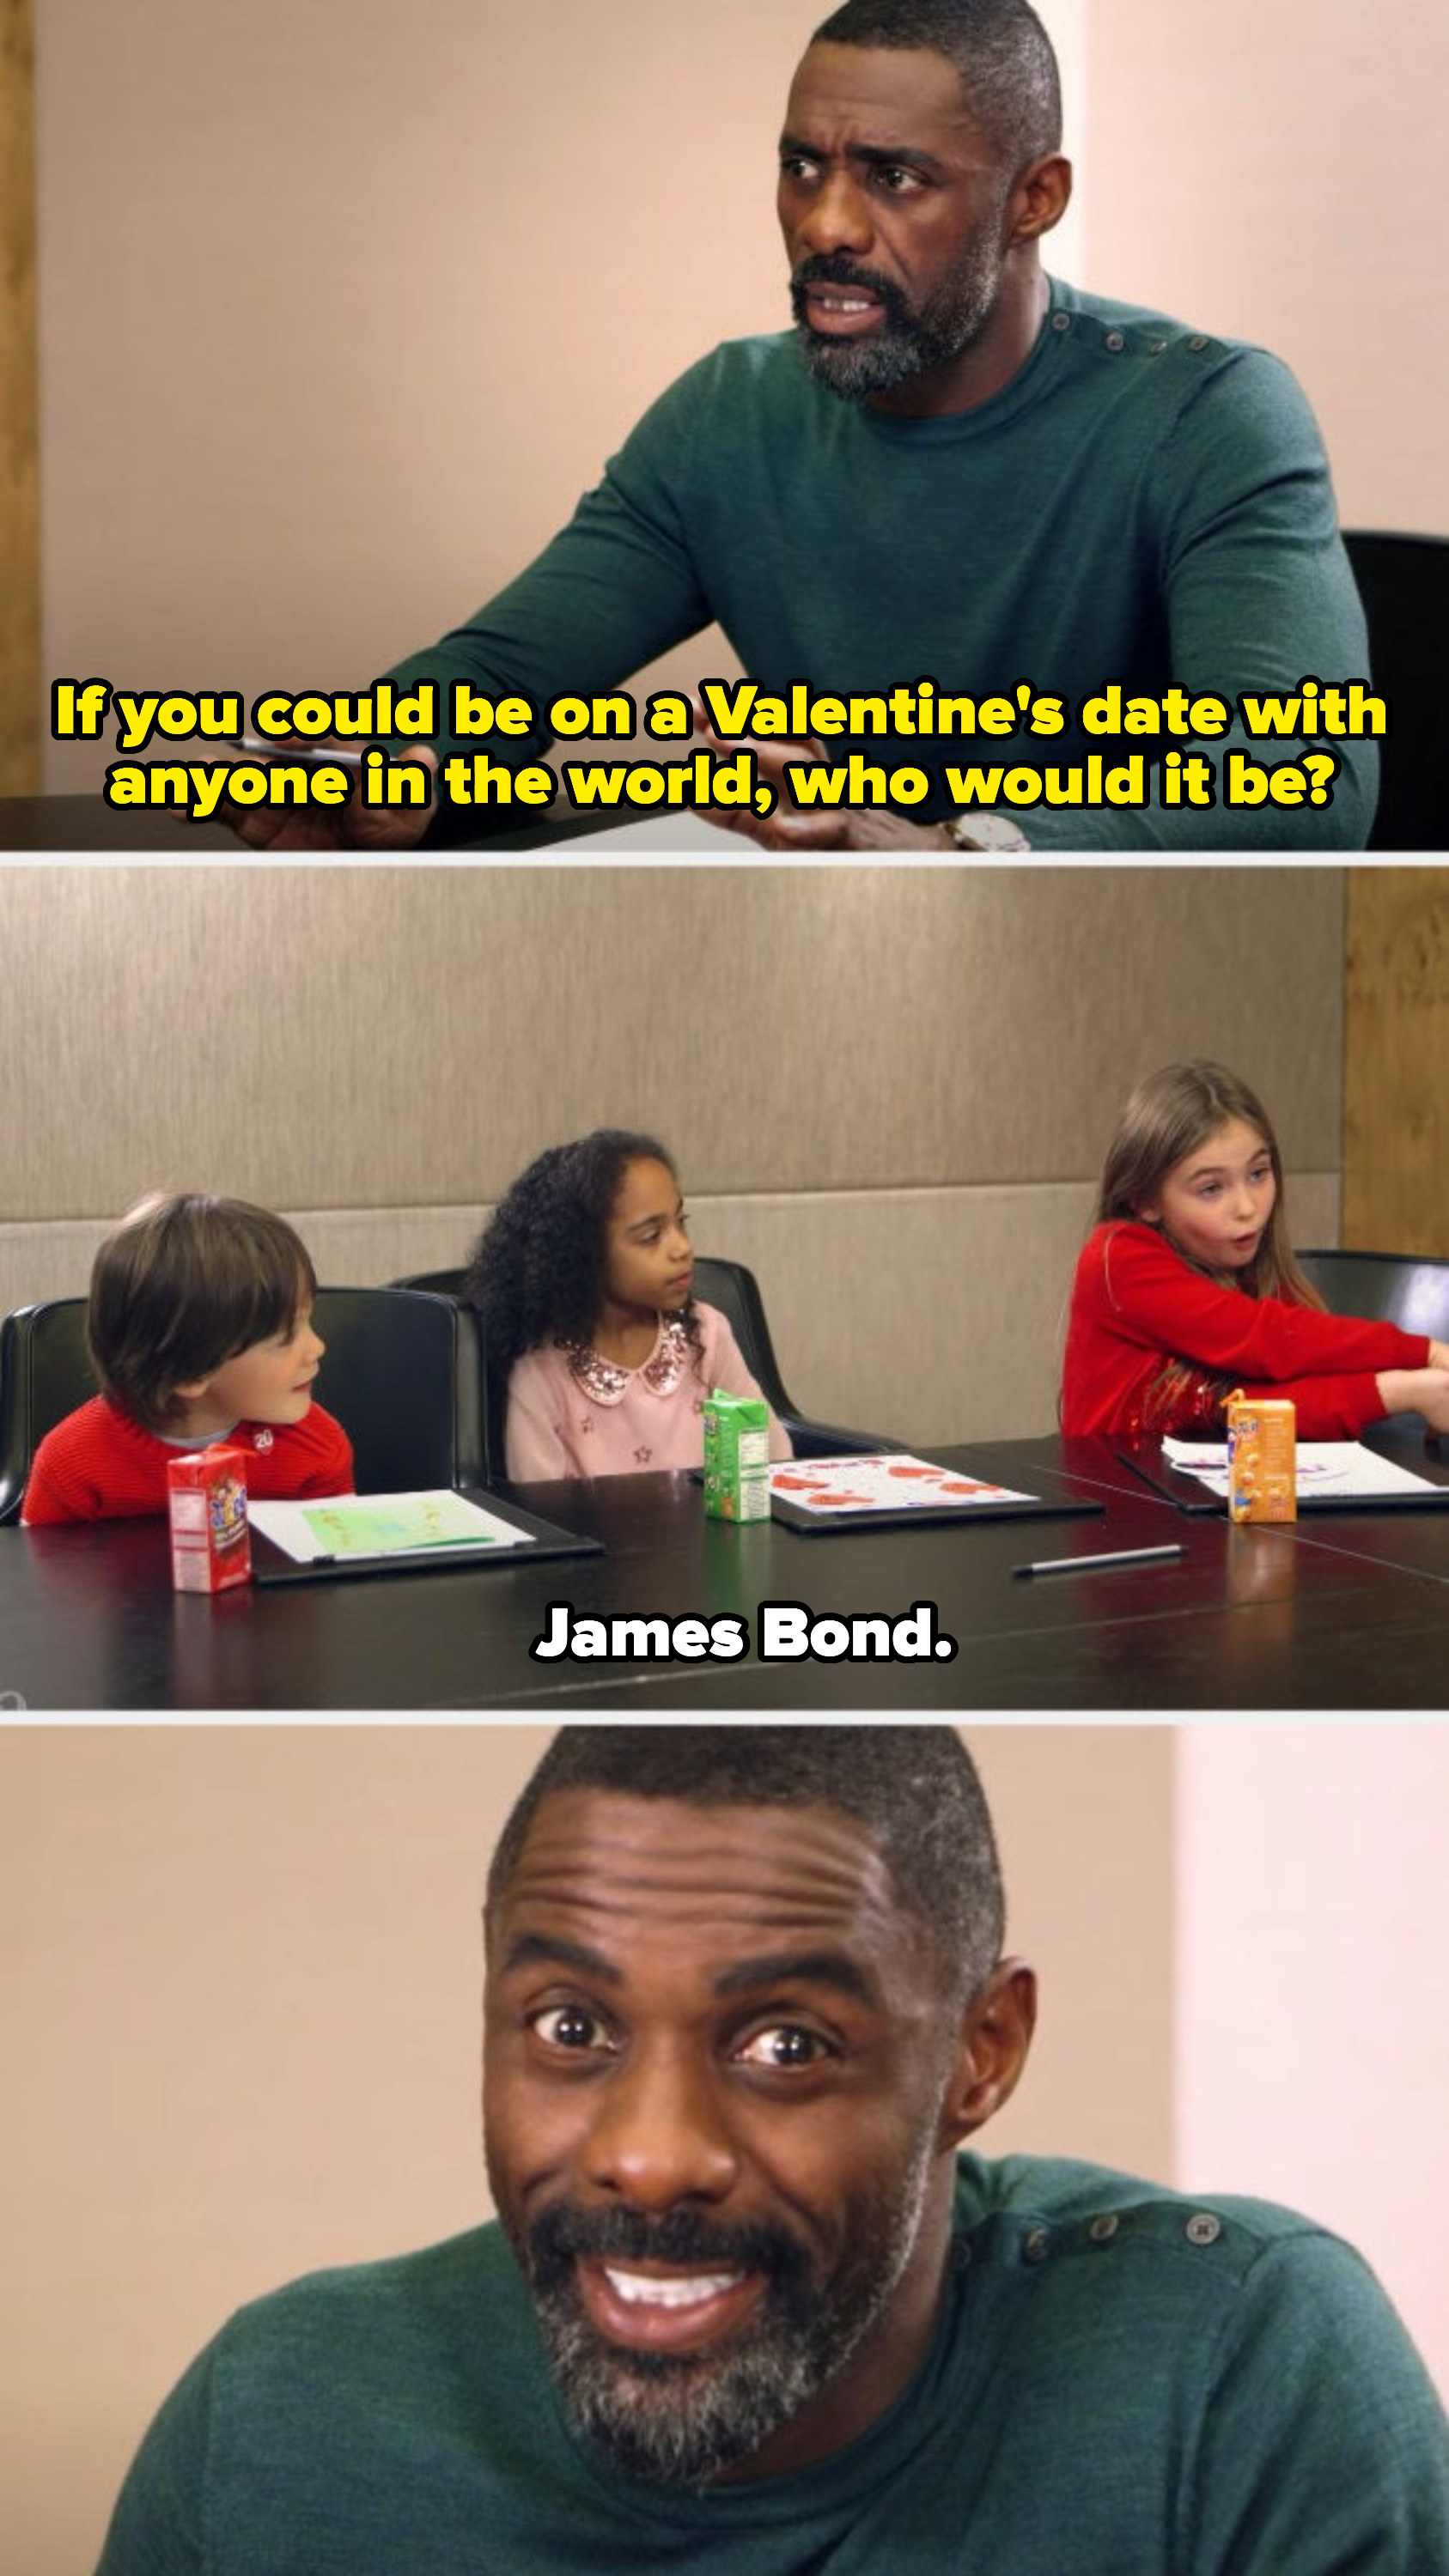 Idris asking kids their dream Valentine's date, one of them saying James Bond, and Idris smiling and looking into the camera